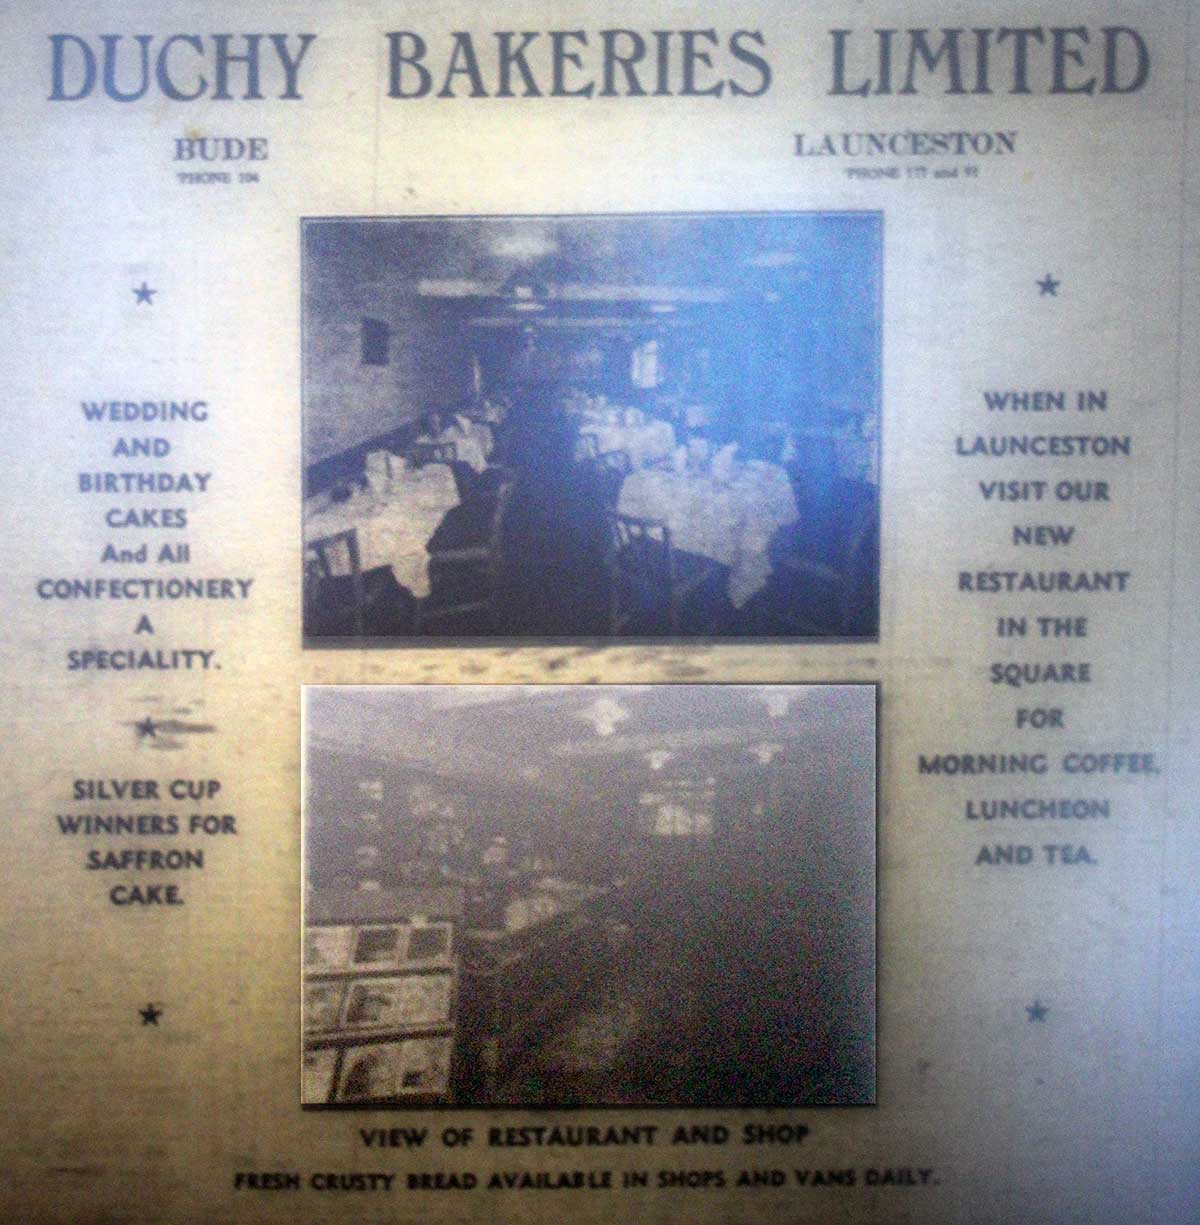 duchy-bakeries-1954-advert